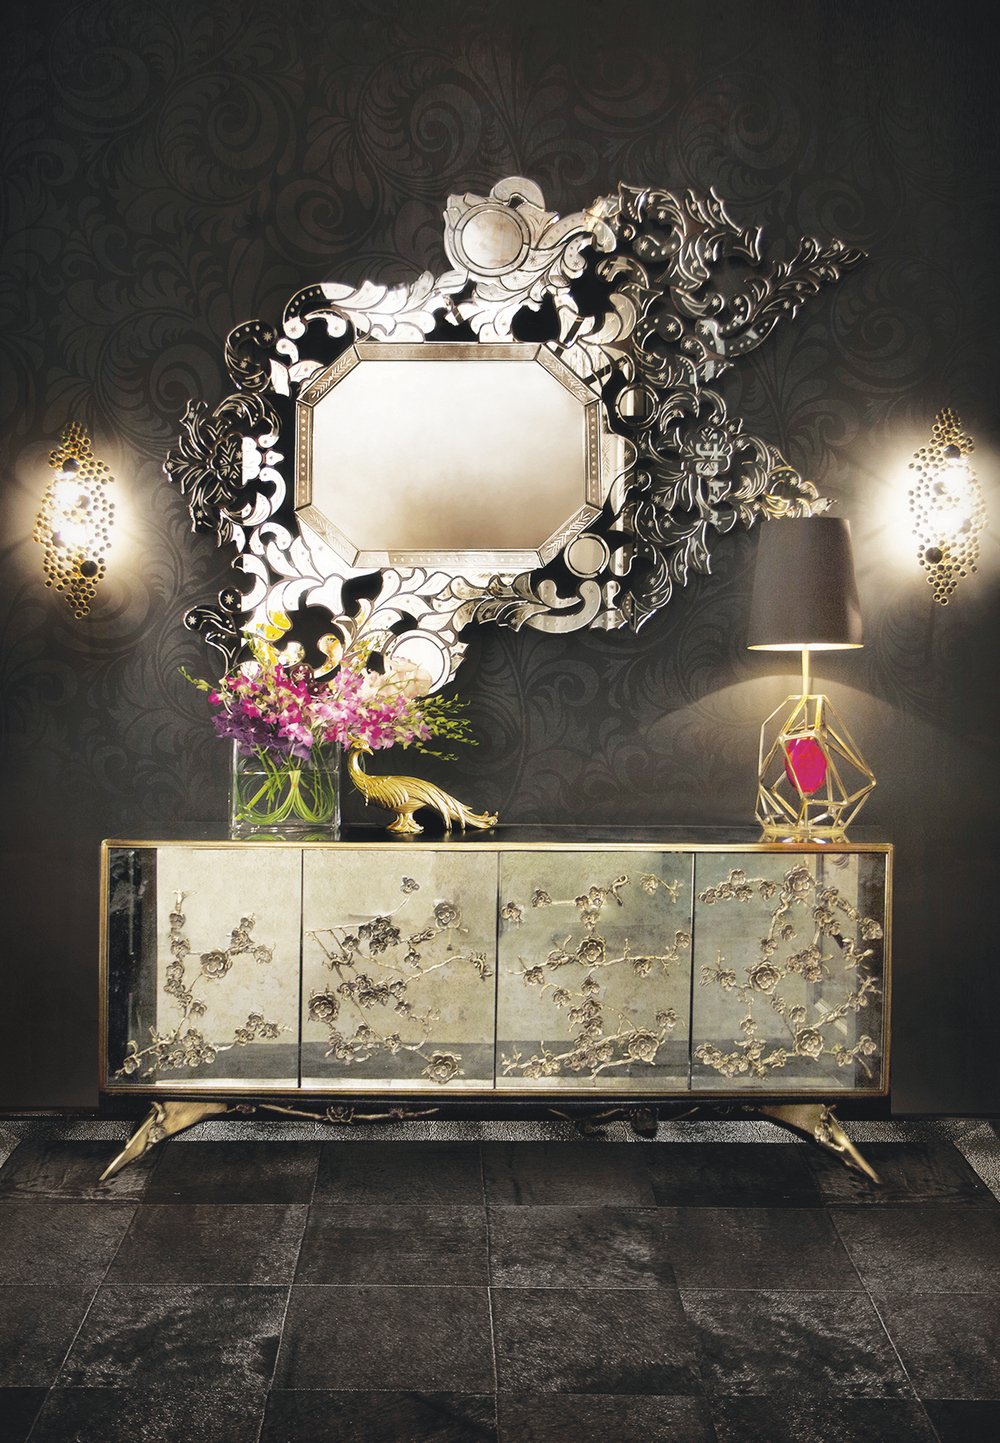 addicta-mirror-spellbound-cabinet-eternity-sconce-gem-table-lamp-chandra-chair-koket-projects.jpg